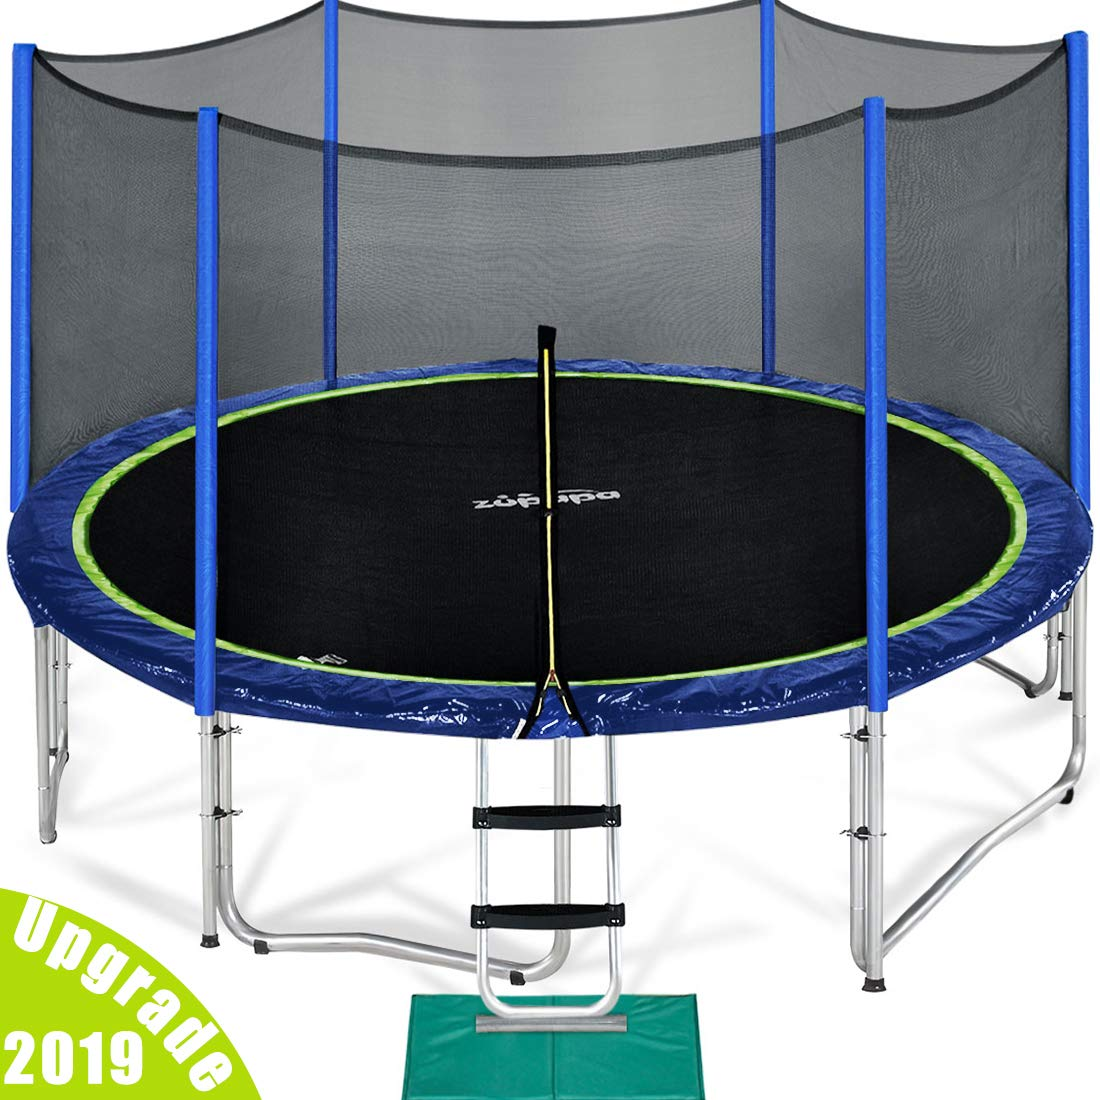 Zupapa Trampoline – Best for Accessories